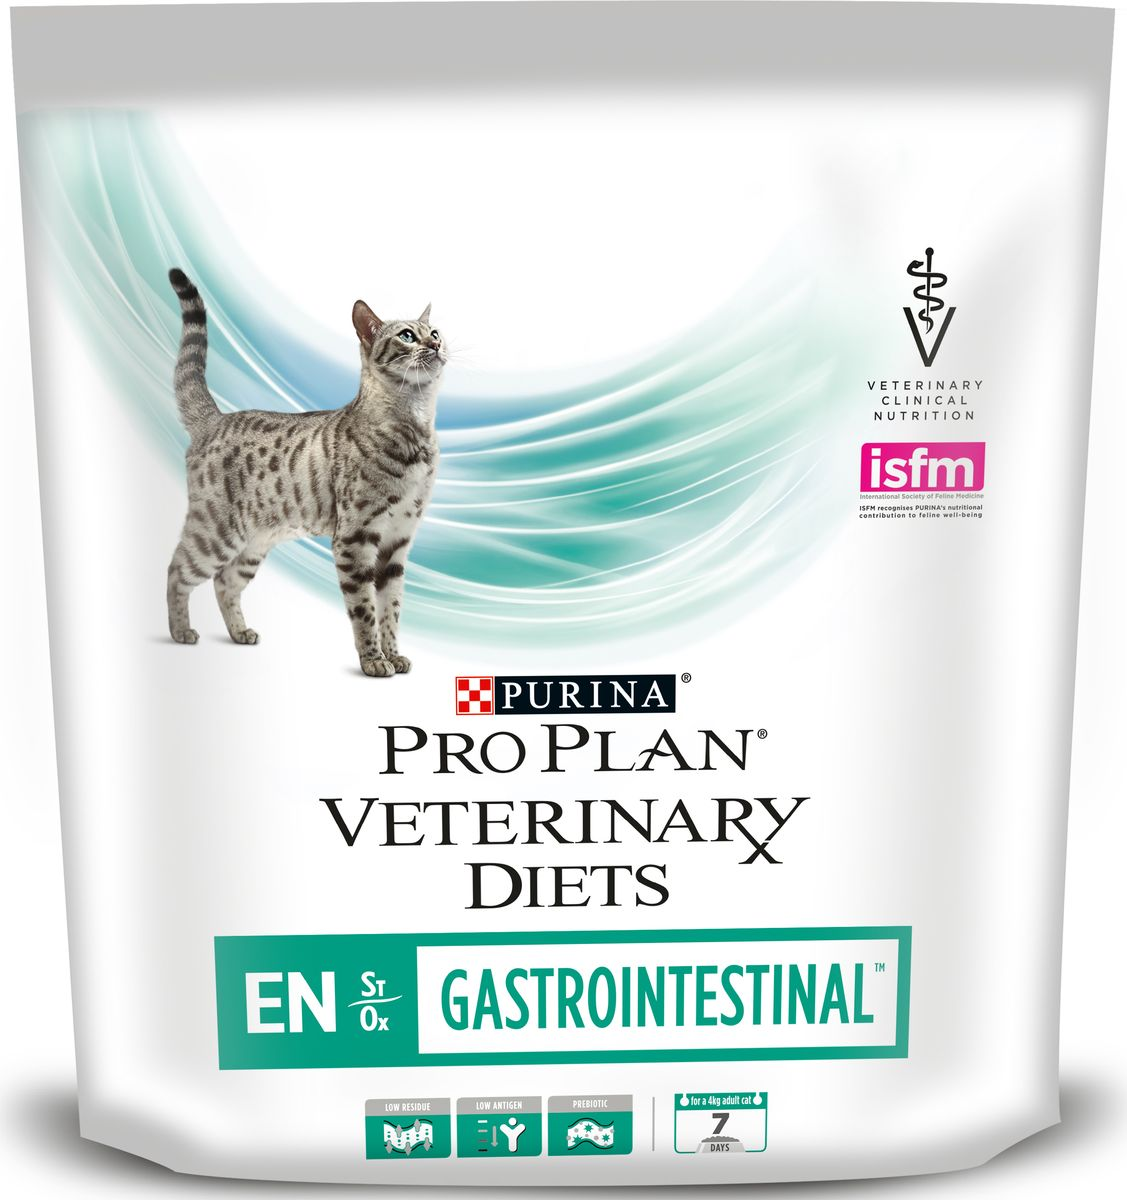 Purina Veterinary Diets Корм сухой для кошек Purina Veterinary Diets